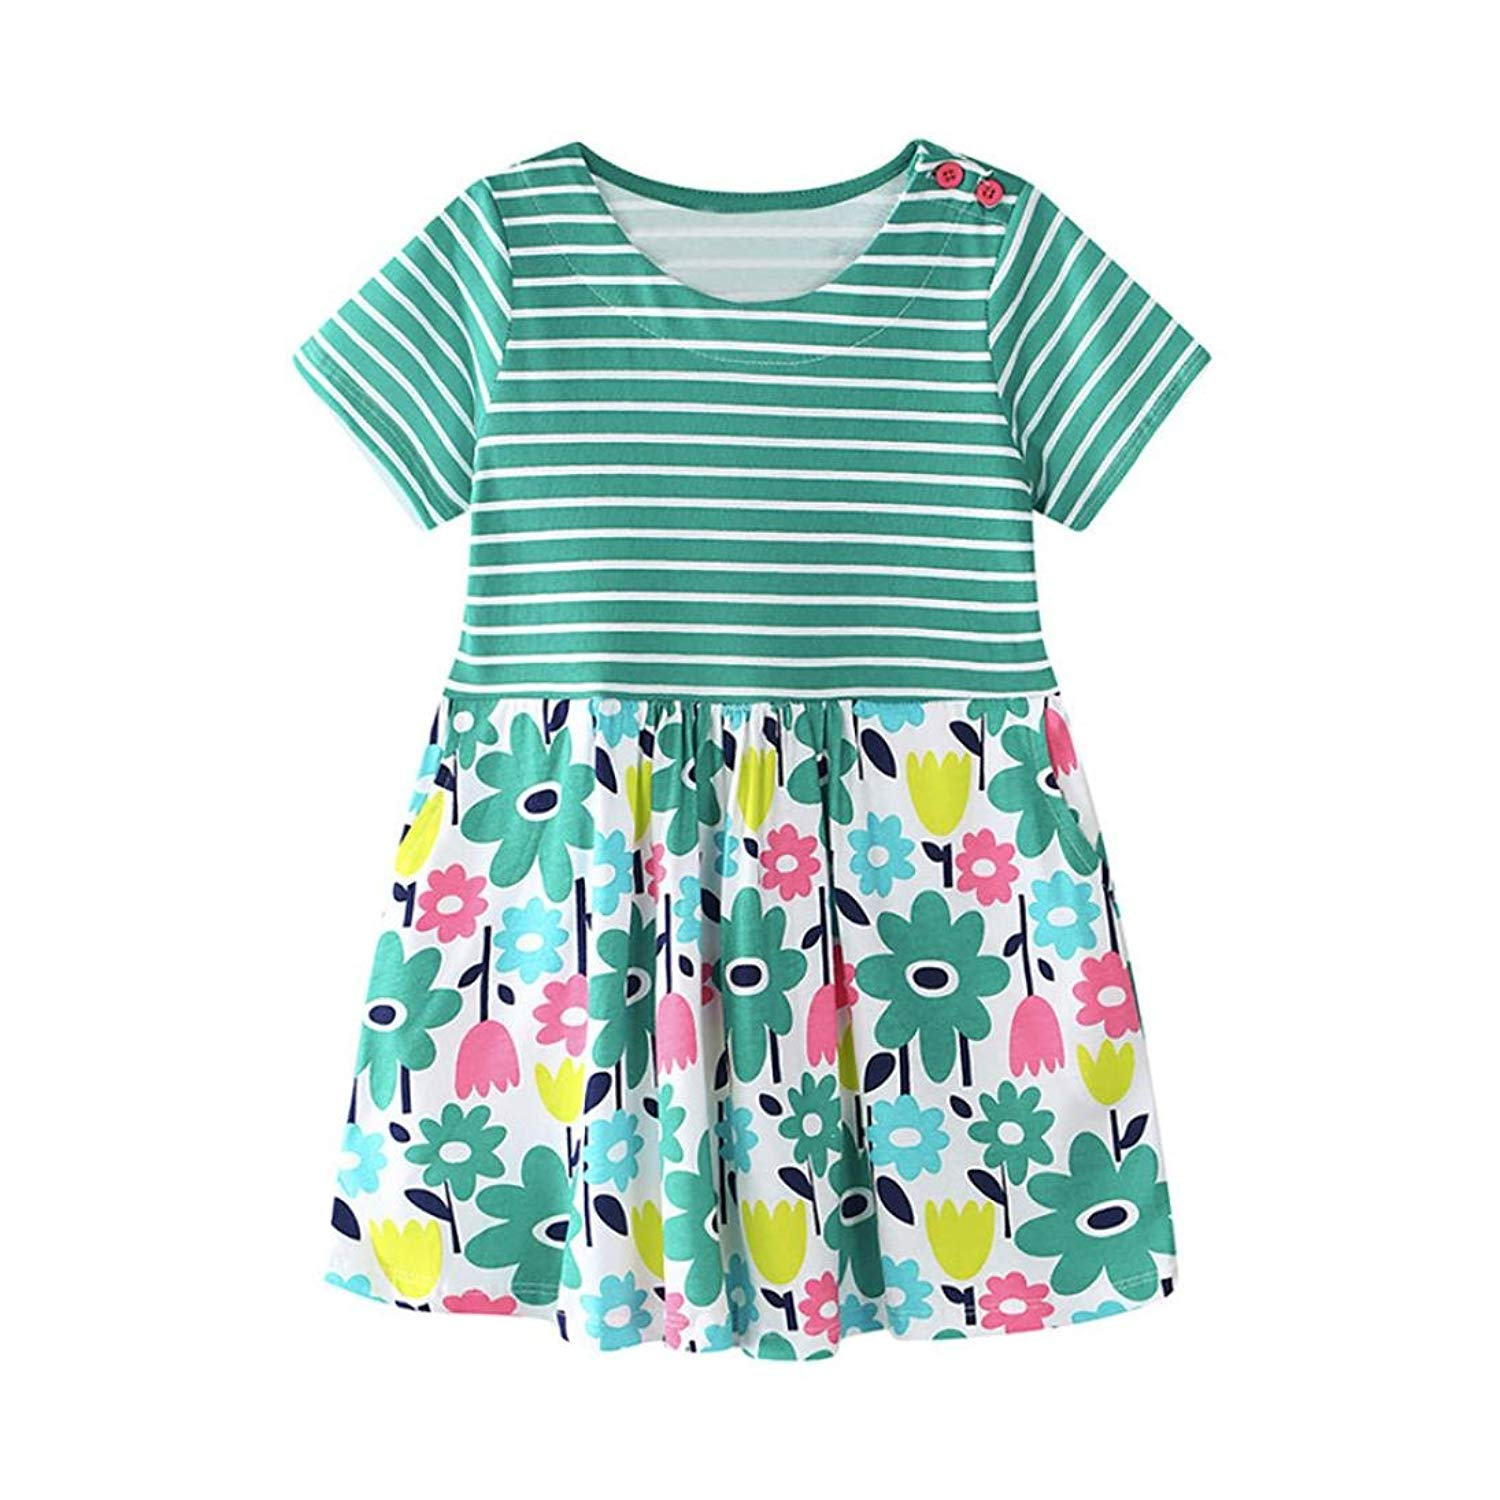 Kehen Kid Toddler Girl Spring Outfit Classic Plaid Swing Dress Casual Tutu Dresses